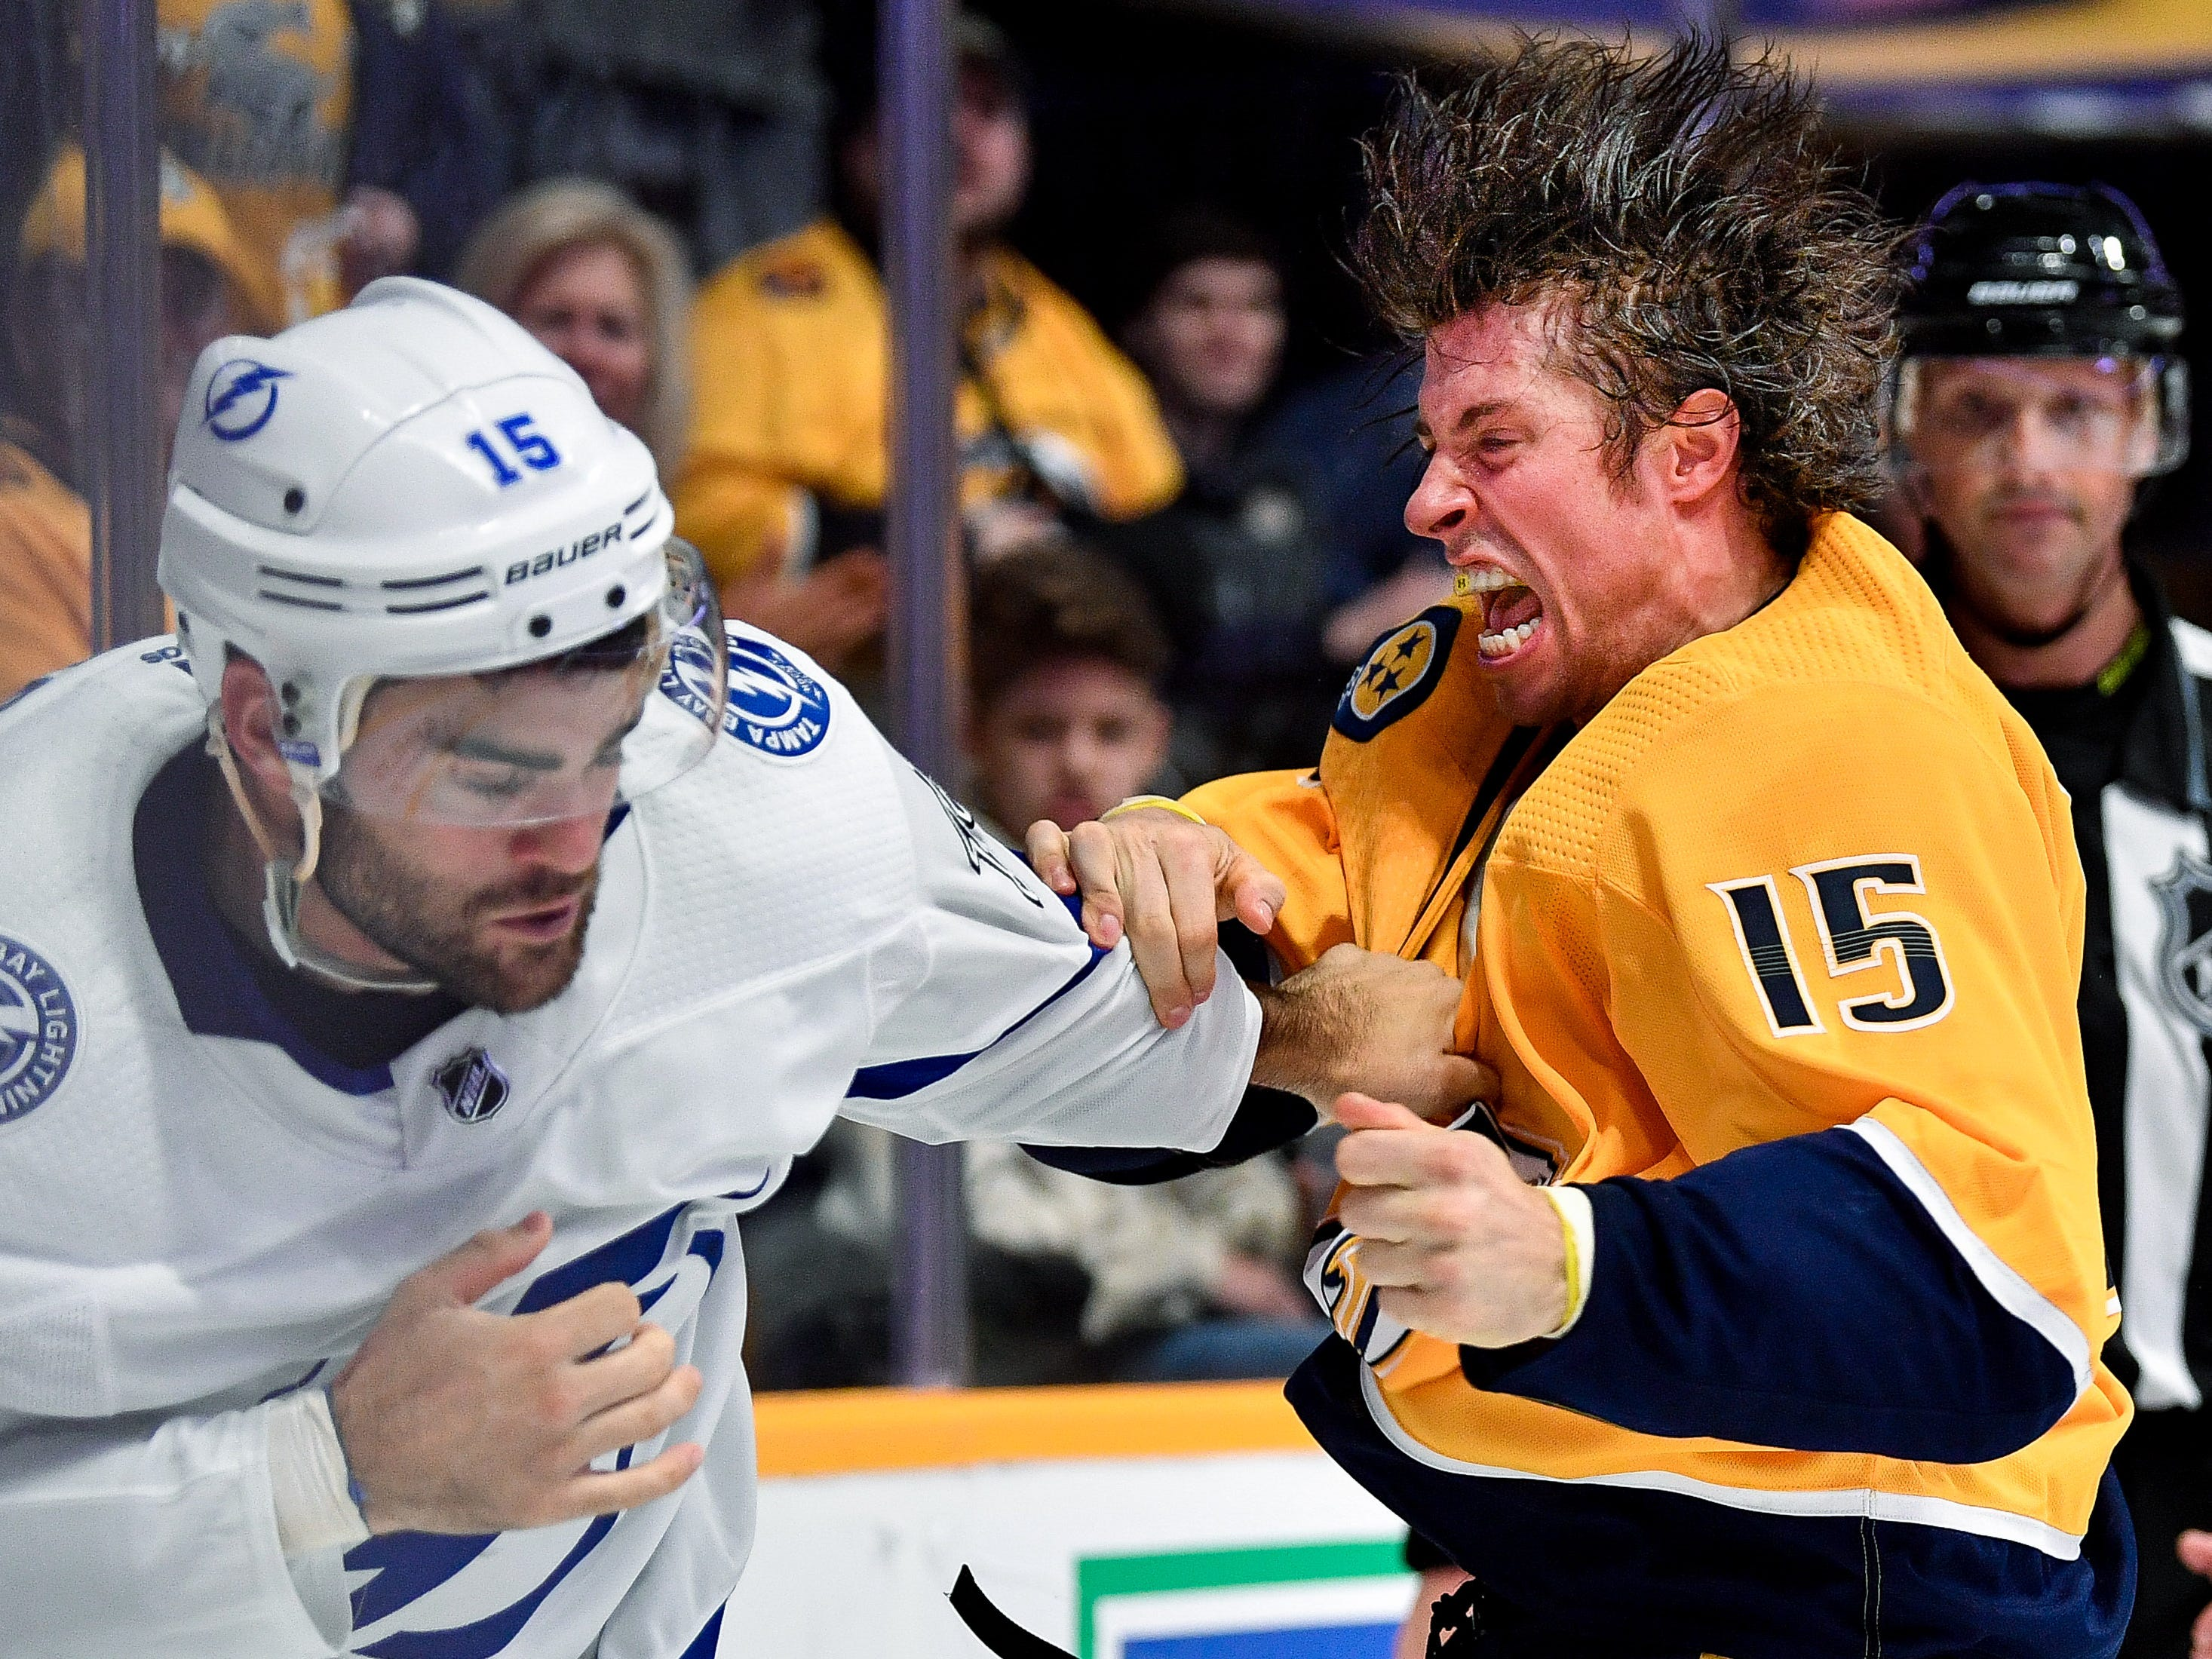 #15, Craig Smith, Forward - Nashville Predators forward Craig Smith (15) fights with Tampa Bay Lightning center Andy Andreoff (15) during the third period at Bridgestone Arena in Nashville, Tenn., Friday, Sept. 21, 2018.